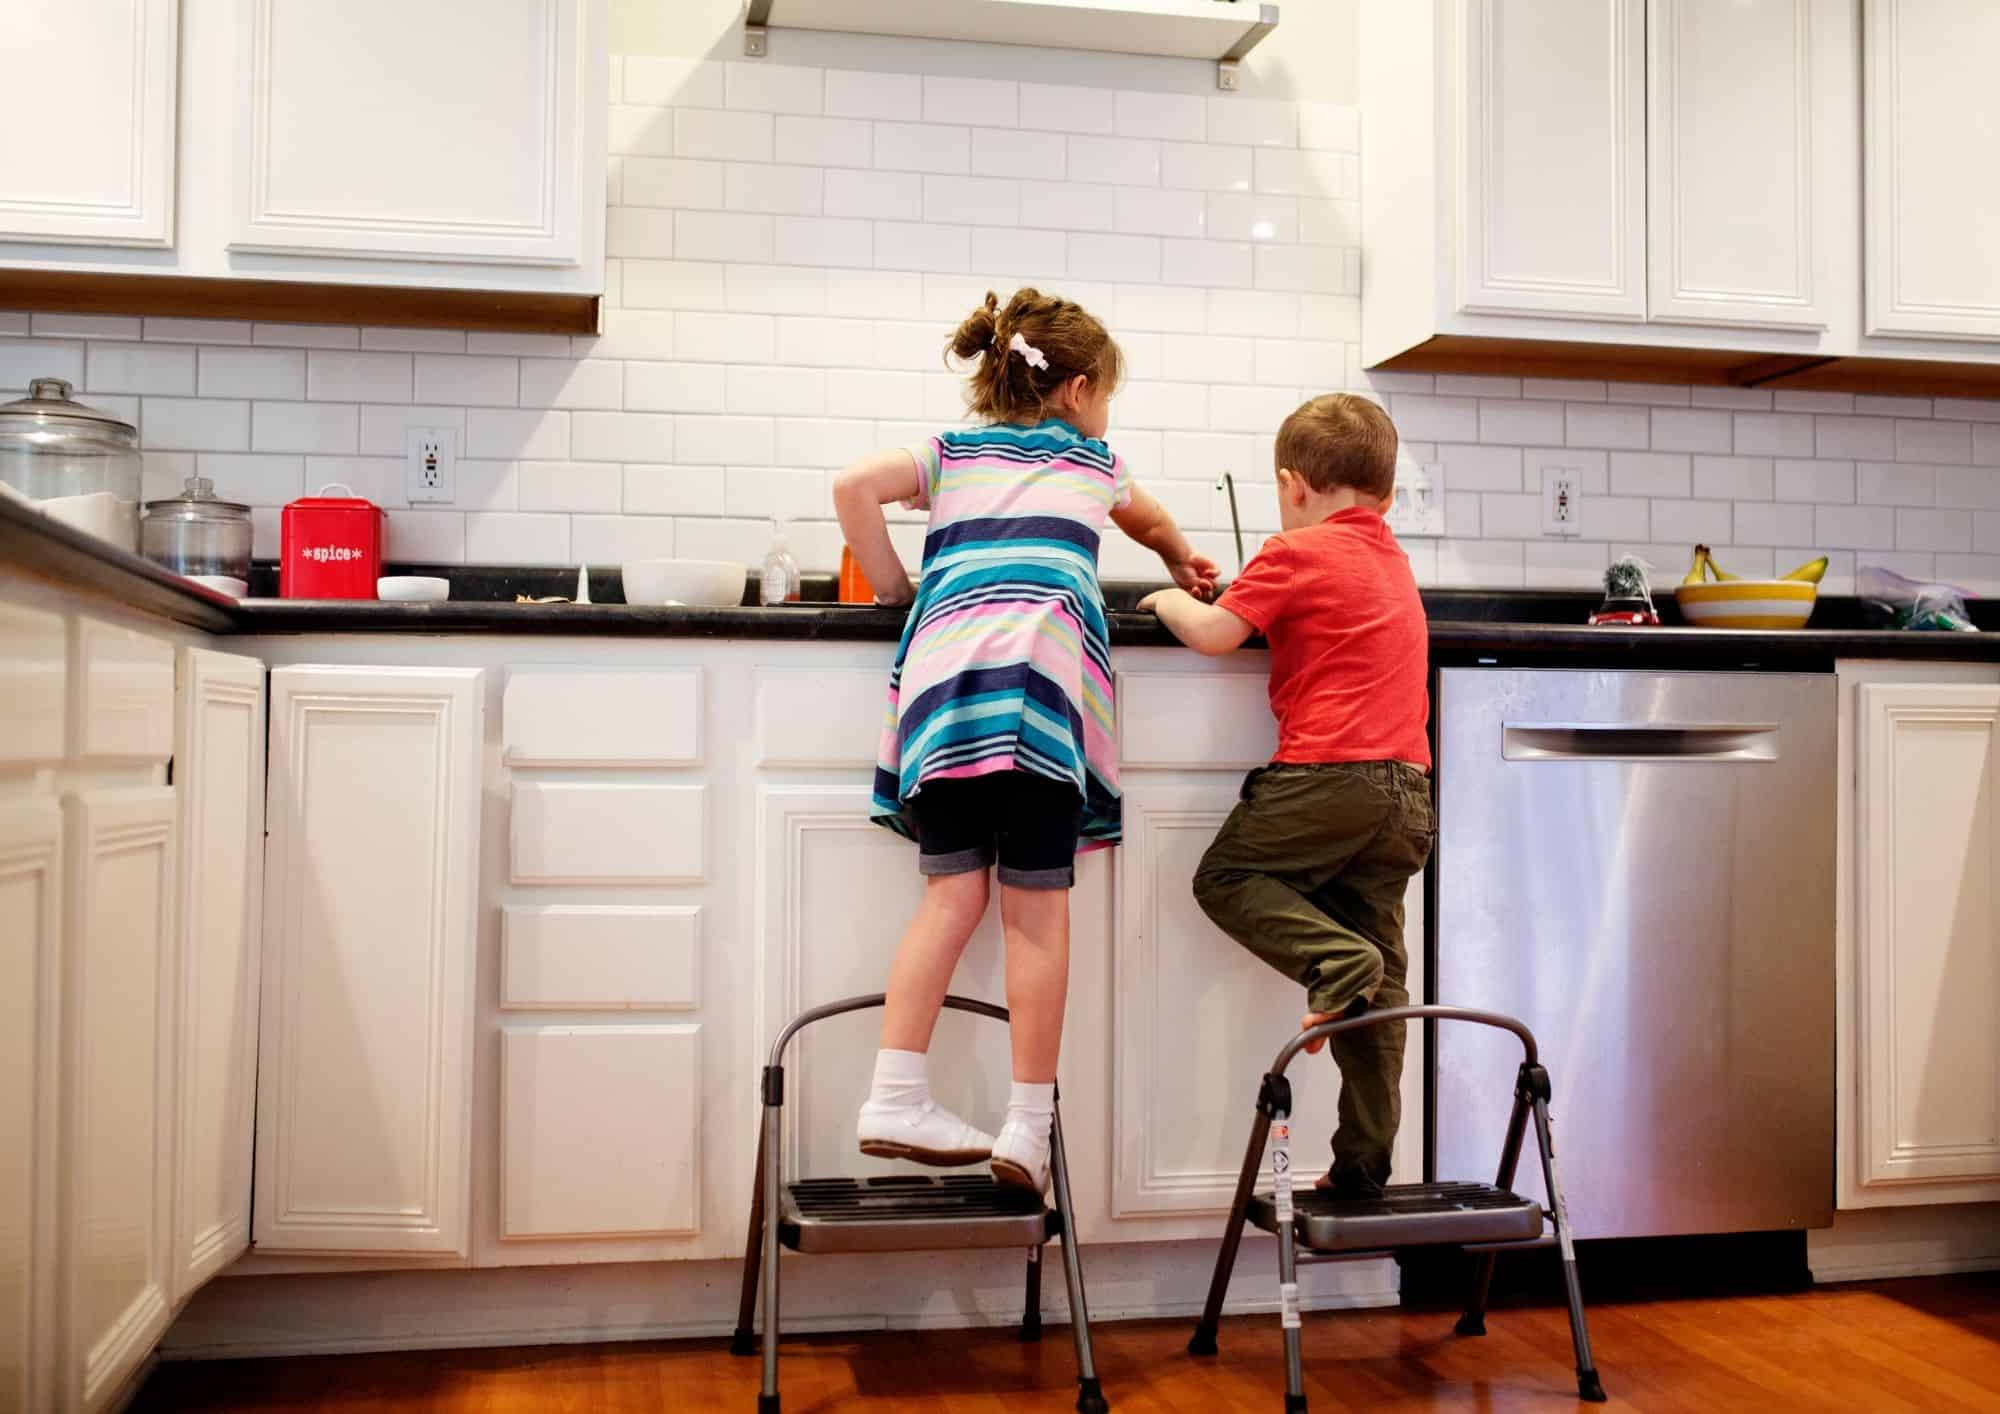 kids doing dishes together